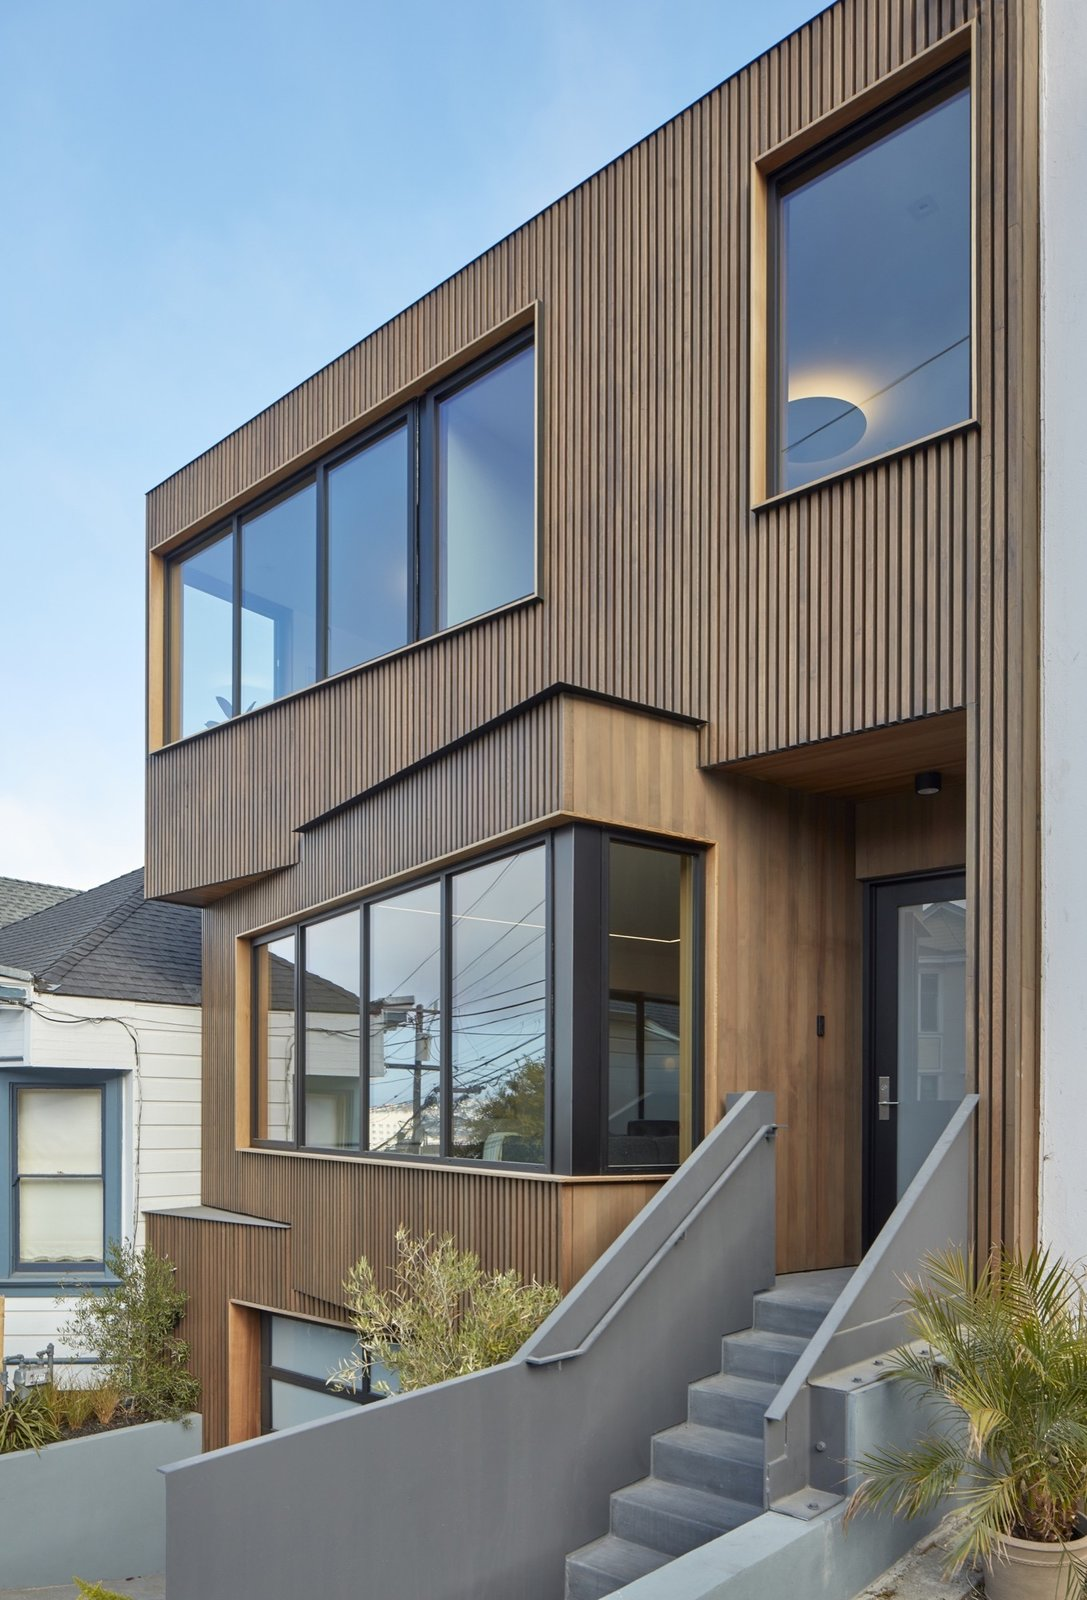 Exterior, Flat RoofLine, Wood Siding Material, and House Building Type View of front entrance from sdiewalk.  Noe Valley House by IwamotoScott Architecture